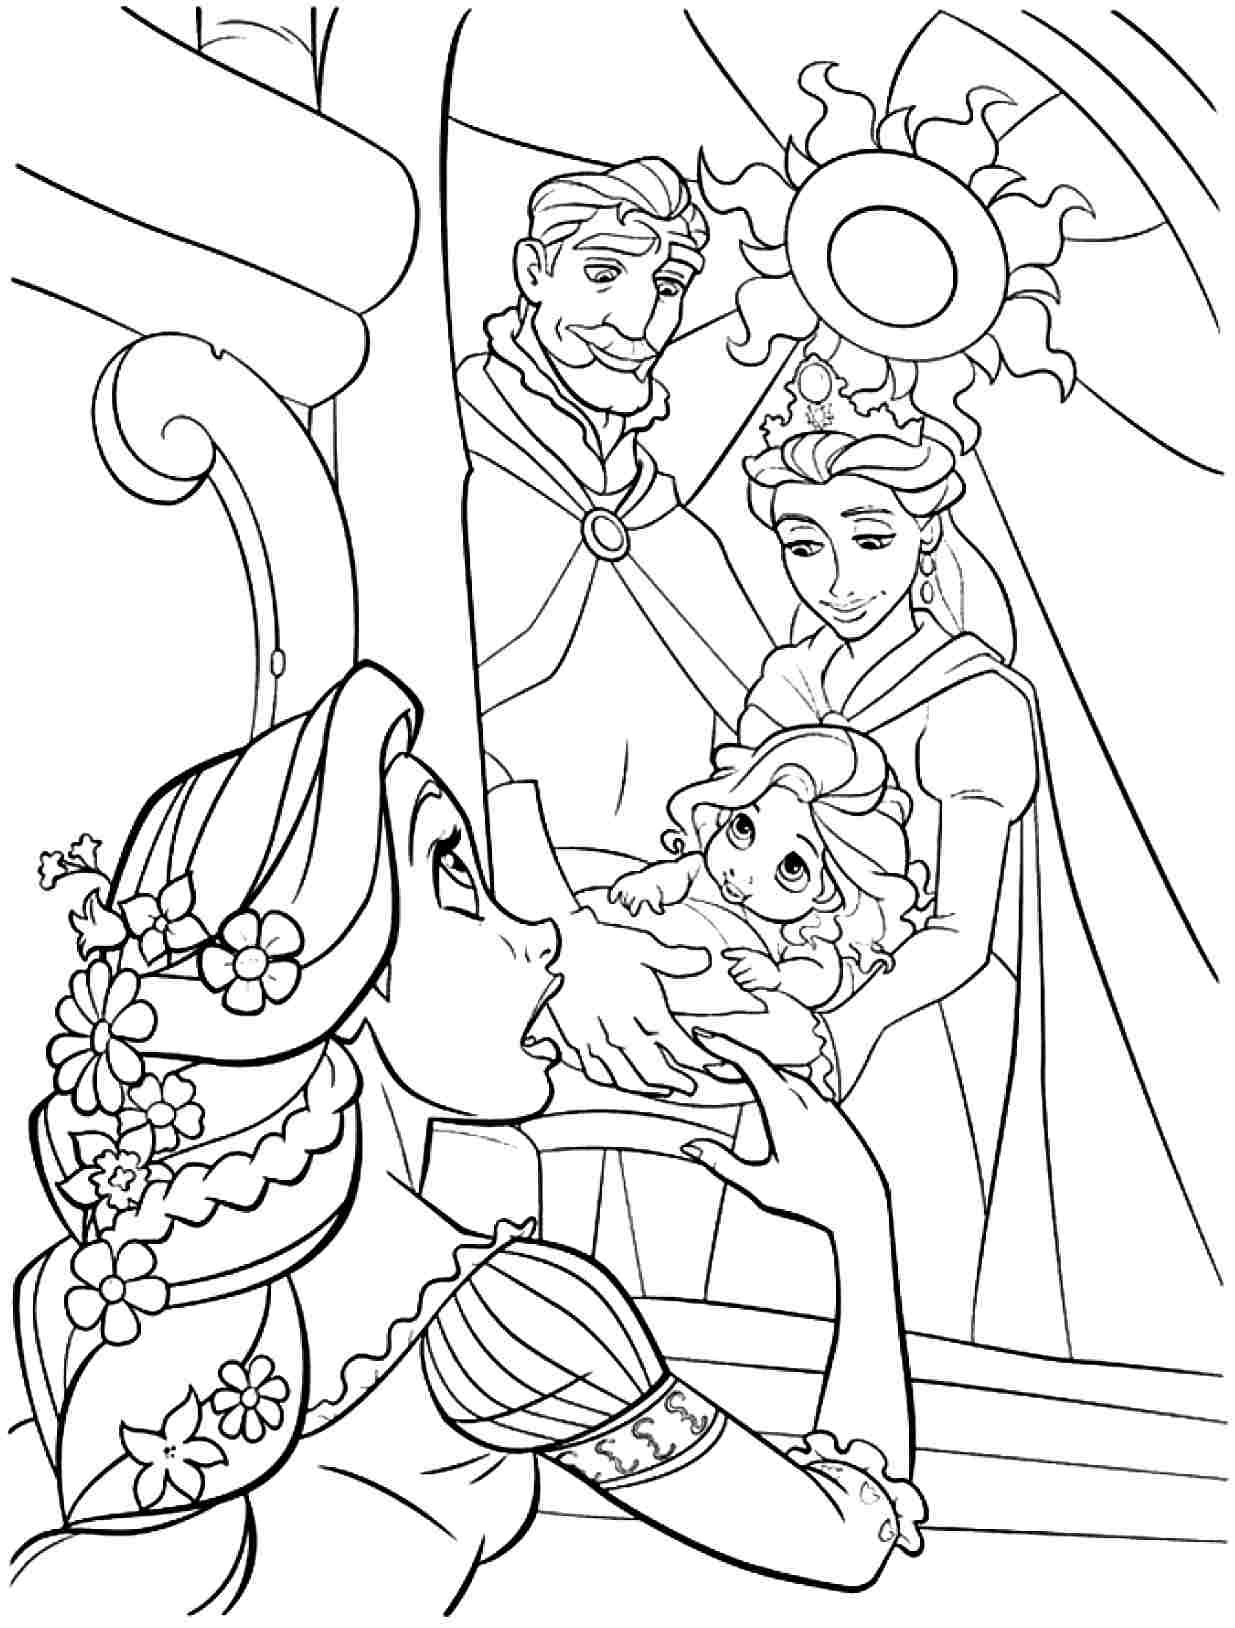 Tangled coloring pages 360coloringpages for Disney tangled coloring pages